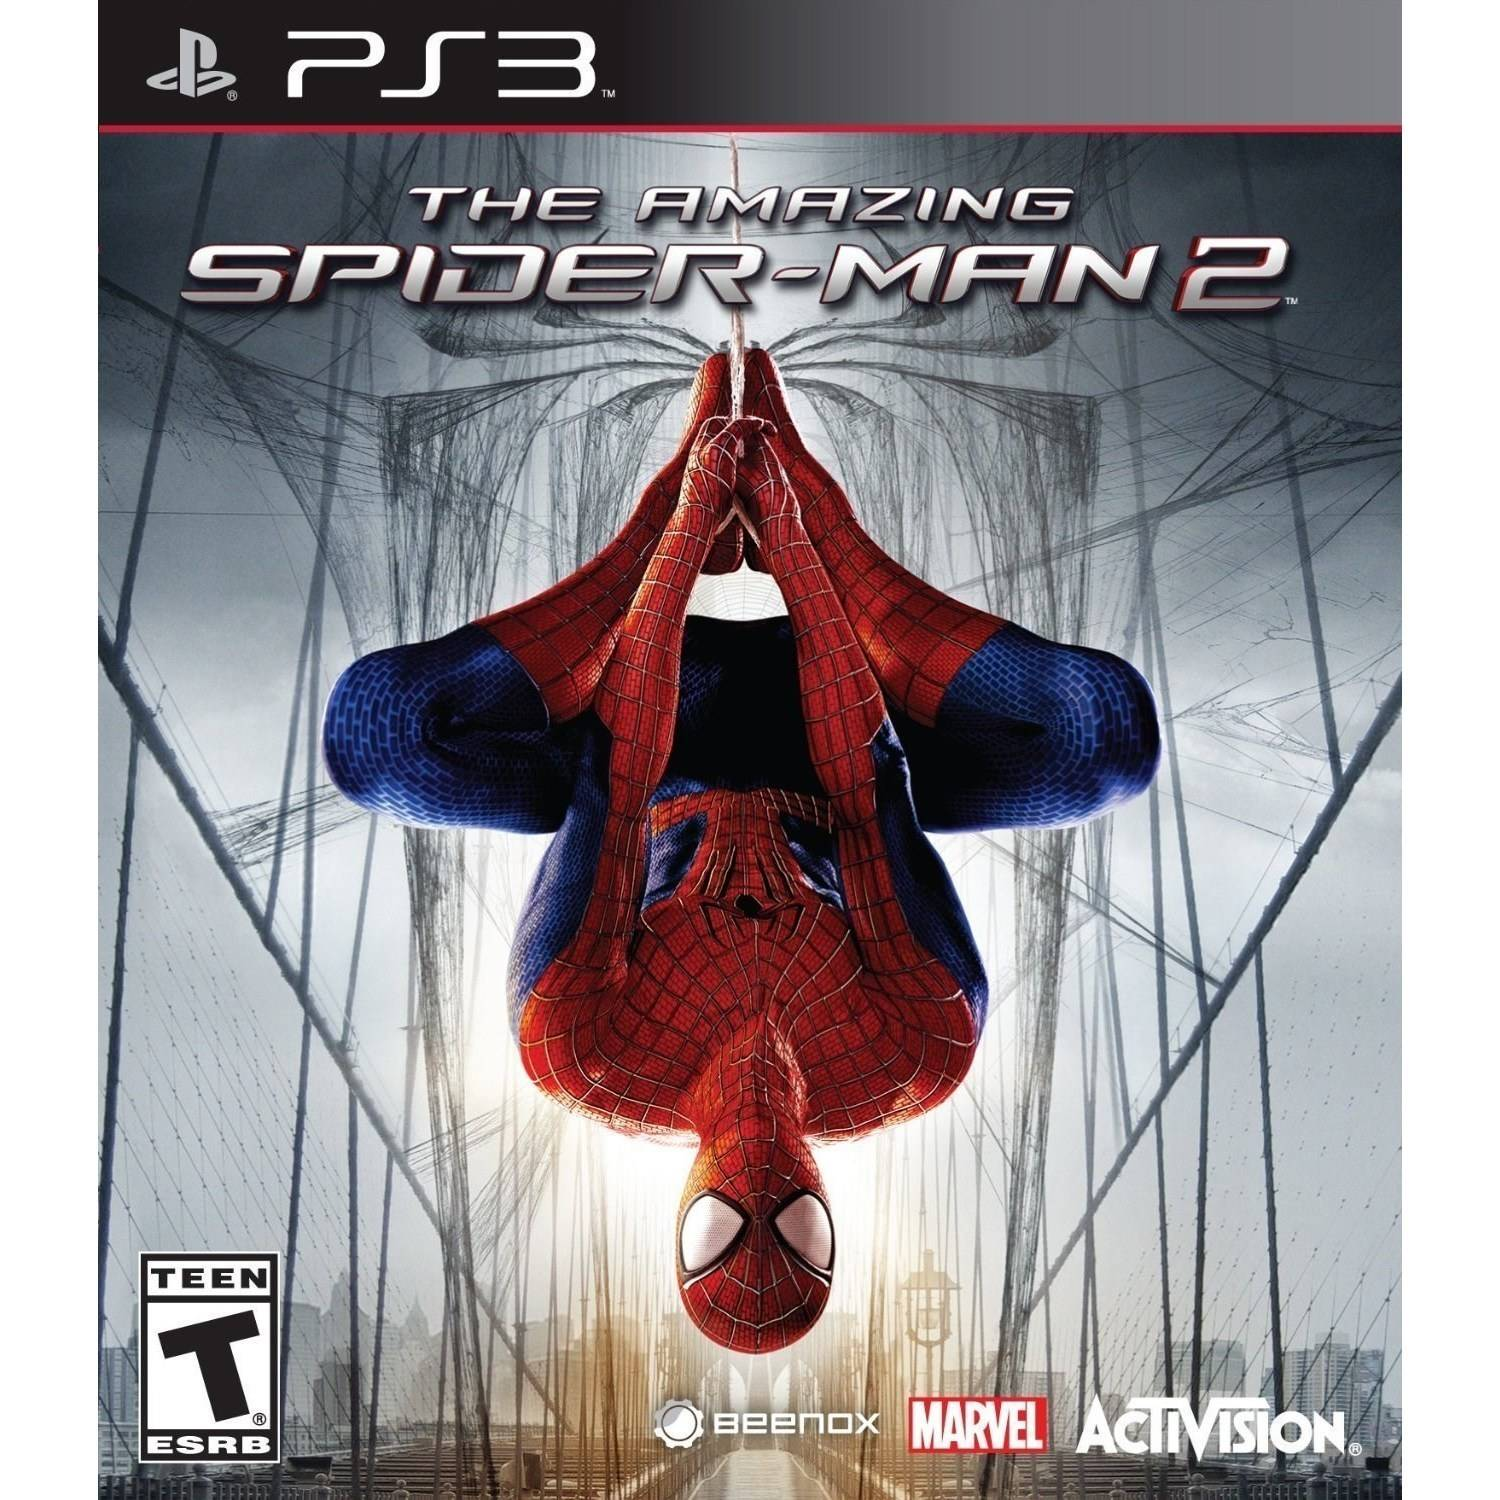 The Amazing Spider-Man 2 (PS3) - Pre-Owned